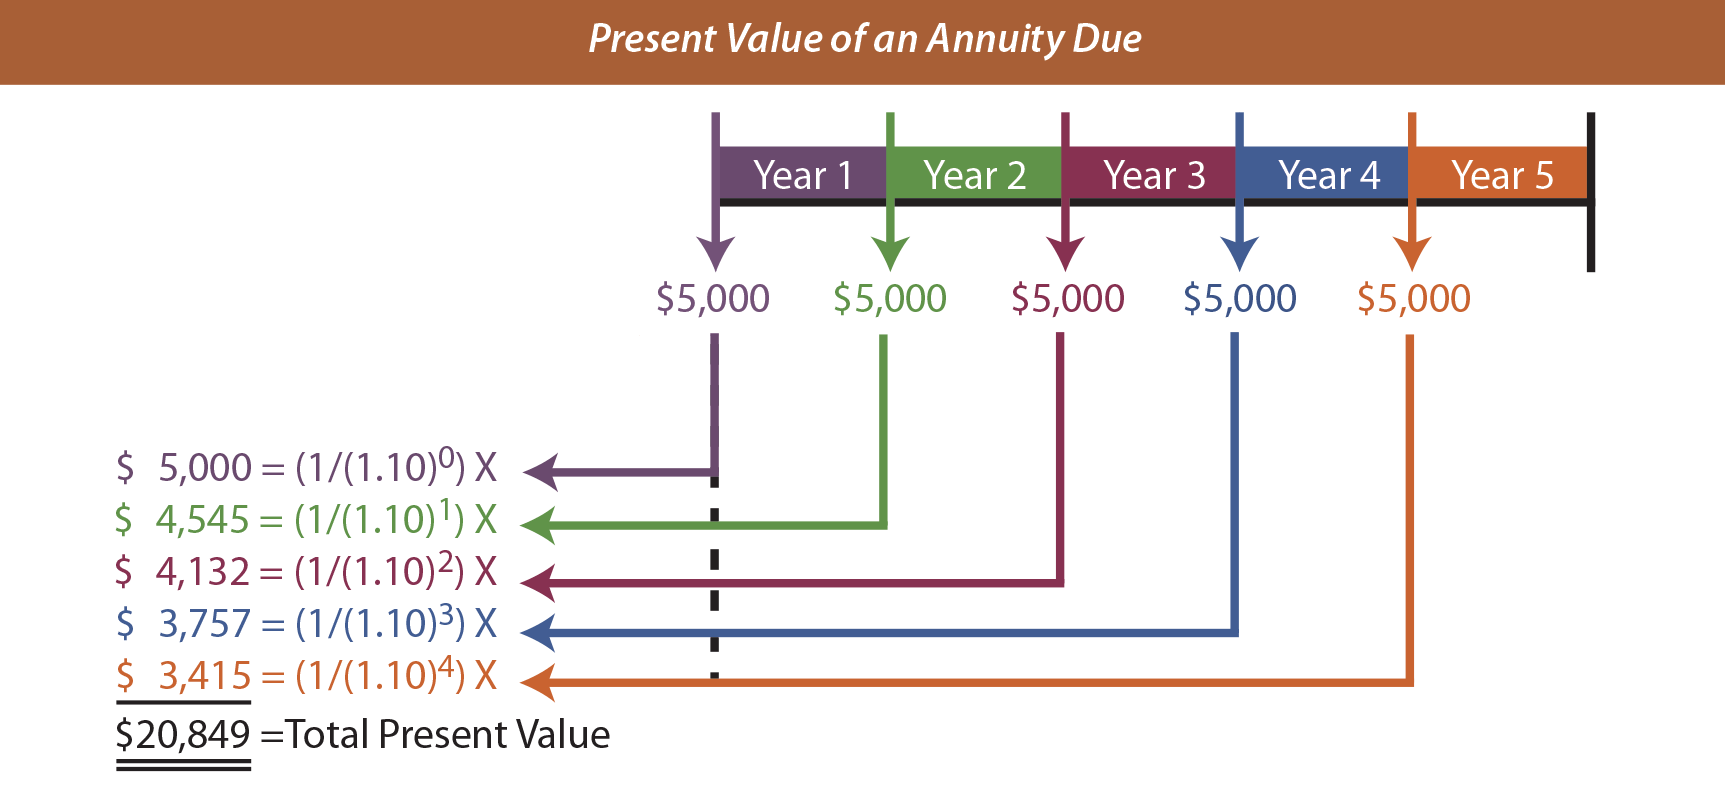 Present Value of an Annuity Due Illustration